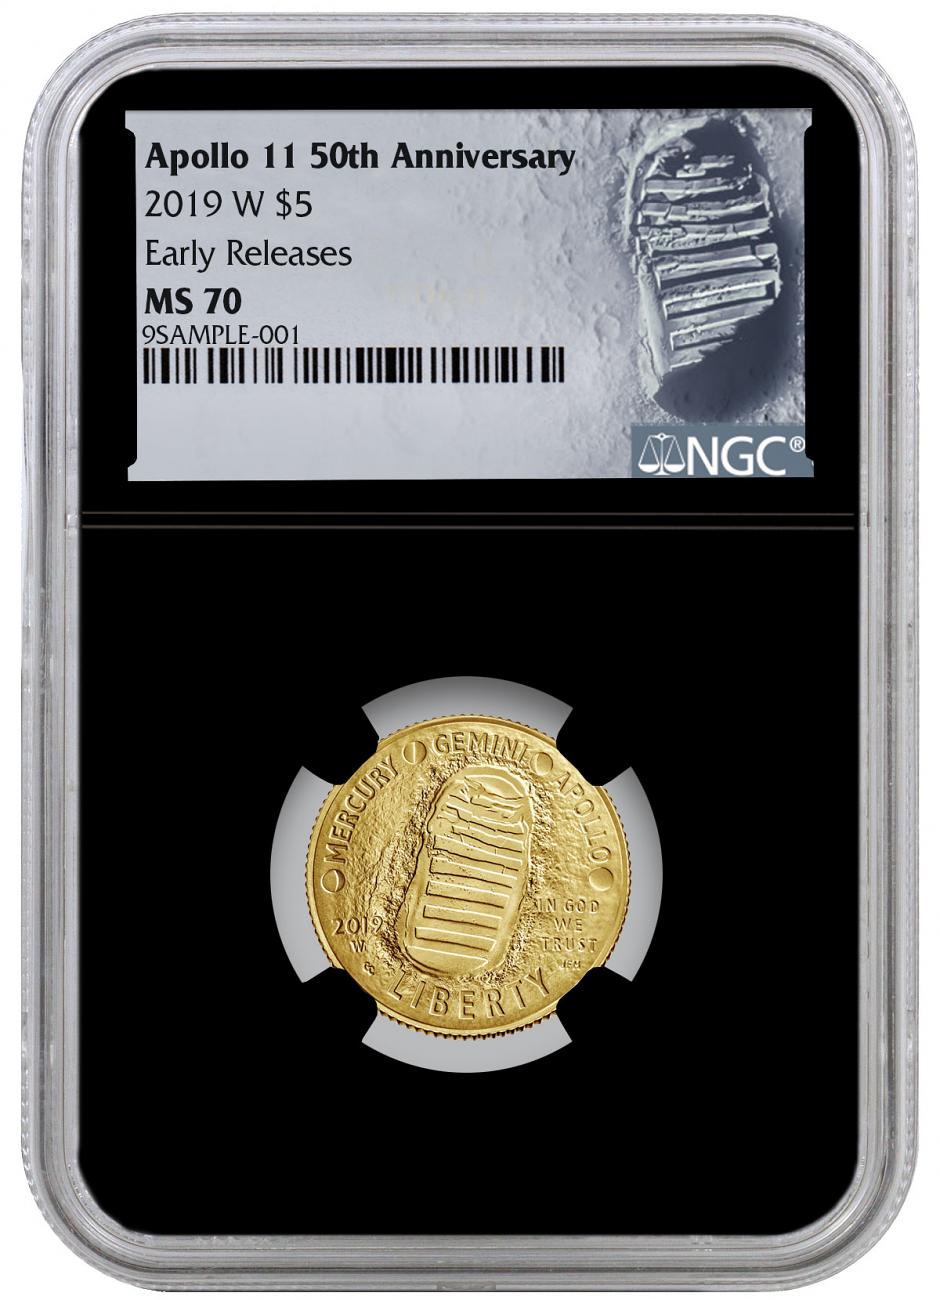 2019-W Apollo 11 50th Anniversary $5 Gold Commemorative Coin NGC MS70 ER Black Core Holder